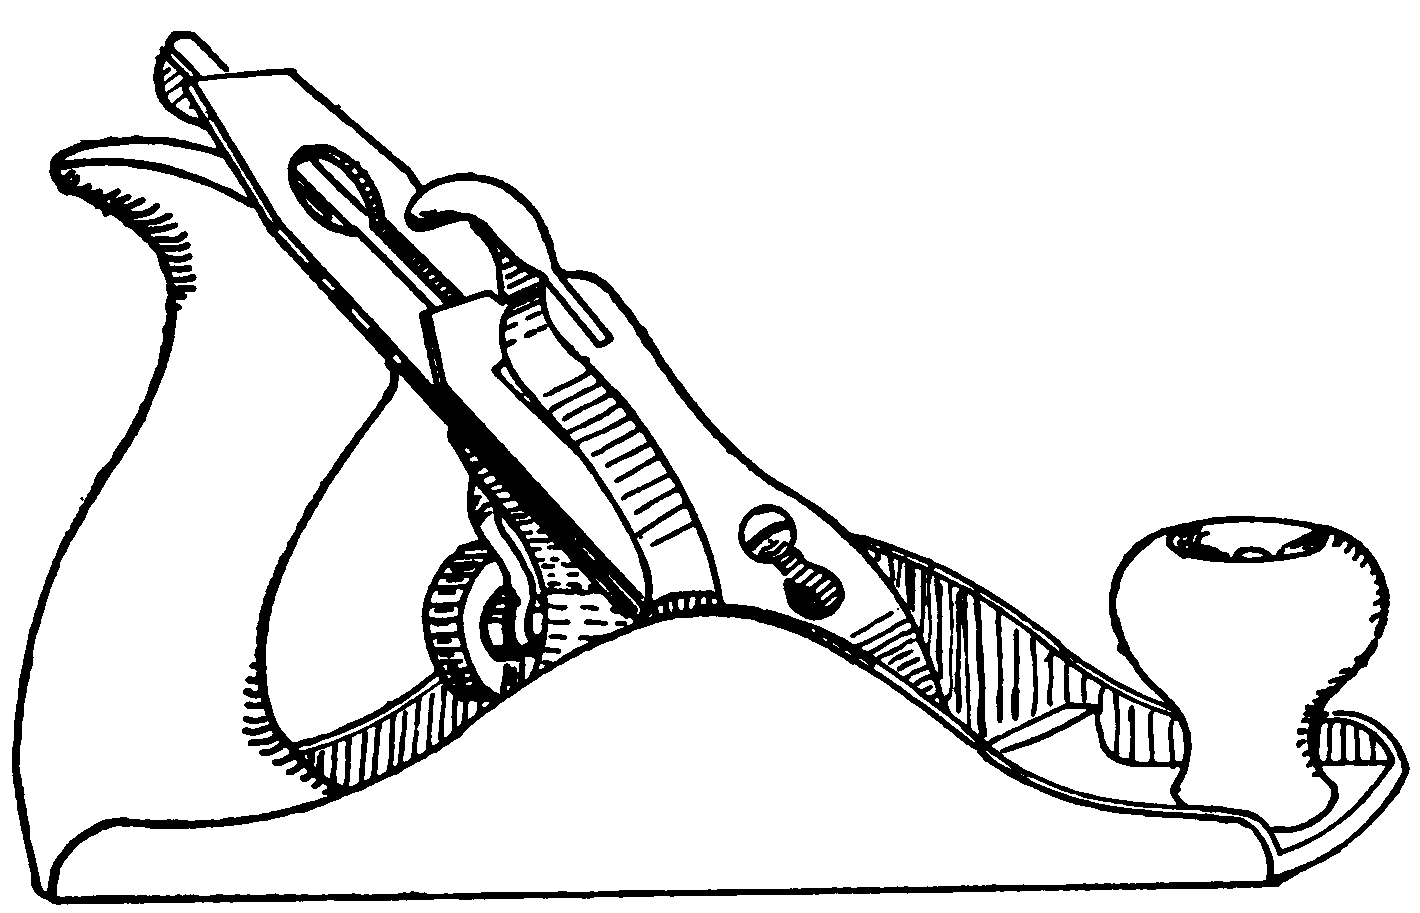 Electrical clipart electrical hand tool. Tools drawing at getdrawings